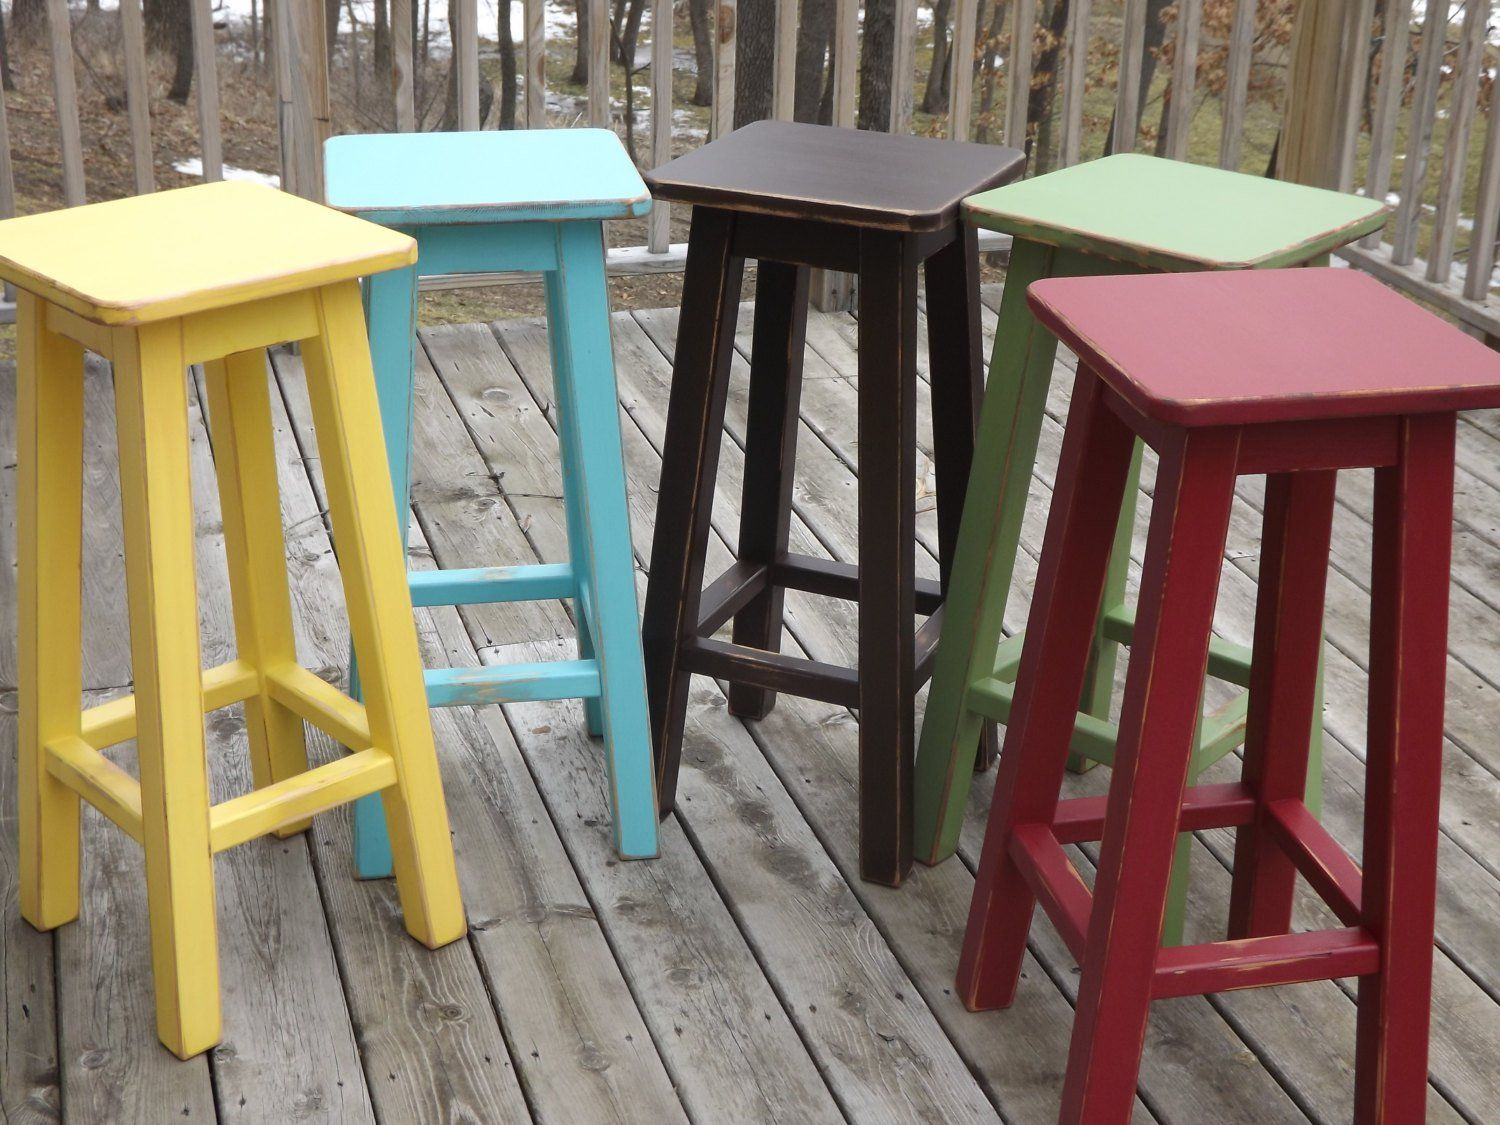 19 Rustic Reclaimed Wood Diy Projects Wood Bar Stools Painted